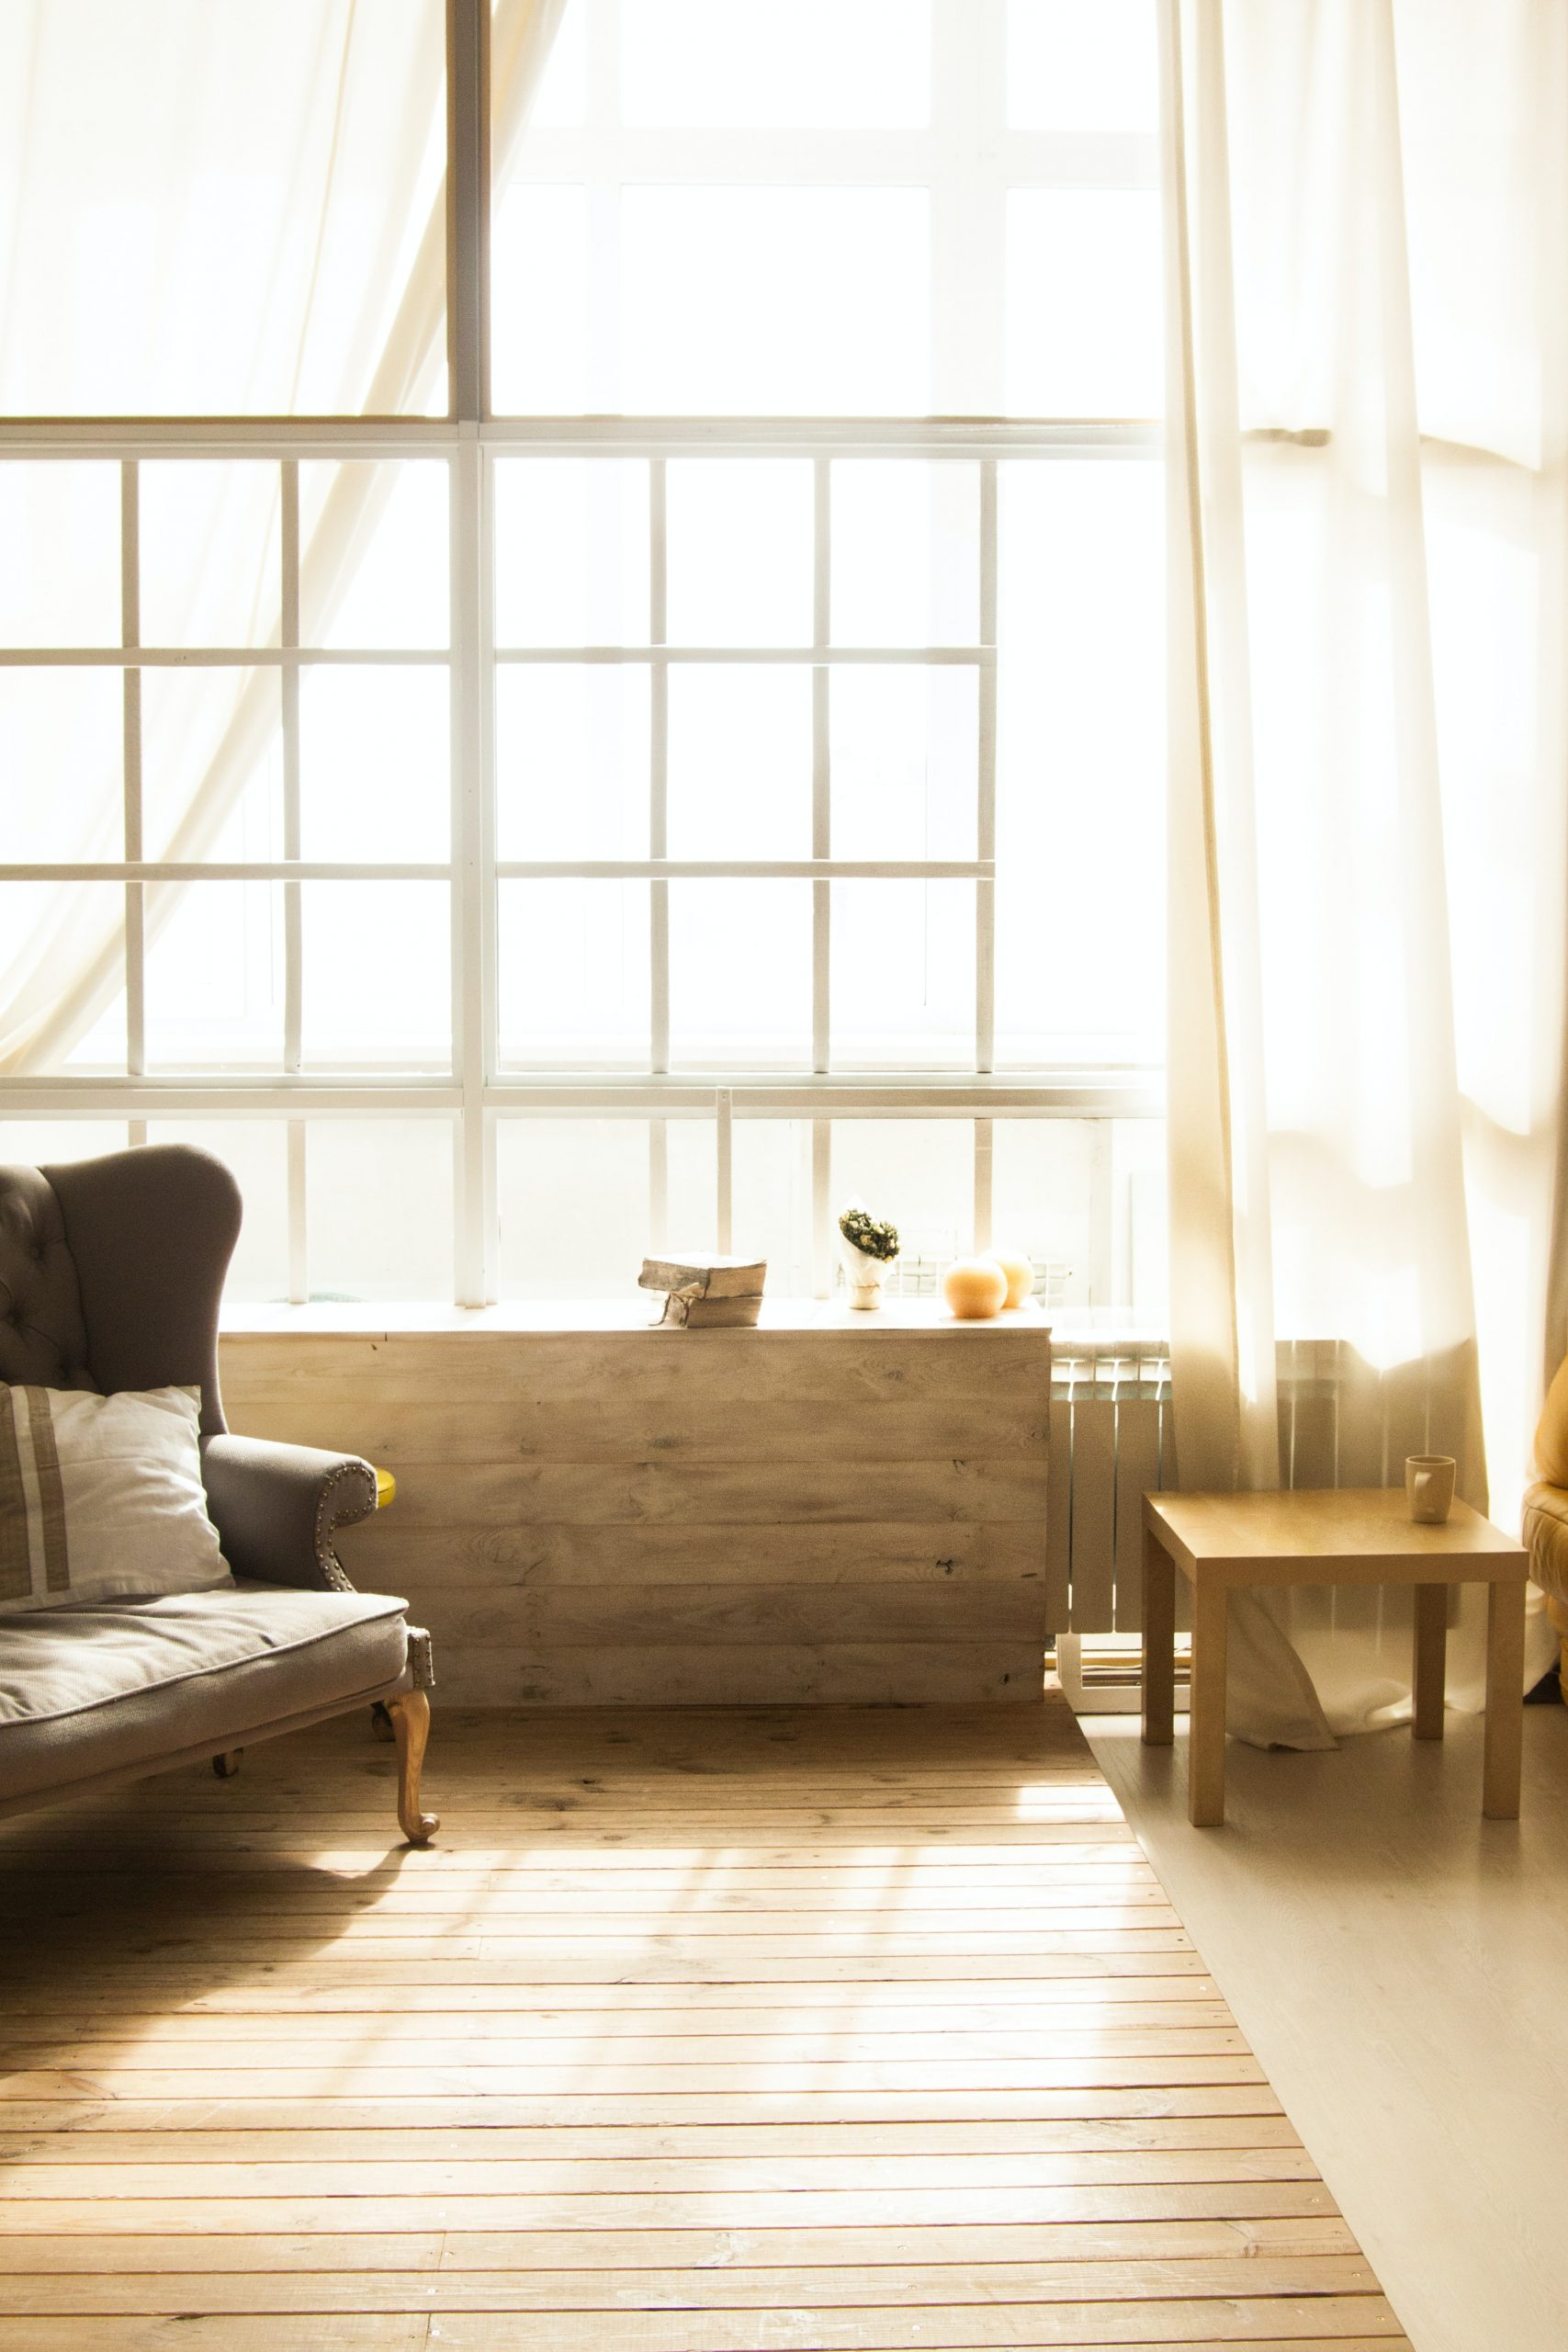 Can Our Living Space Make Us Healthier?